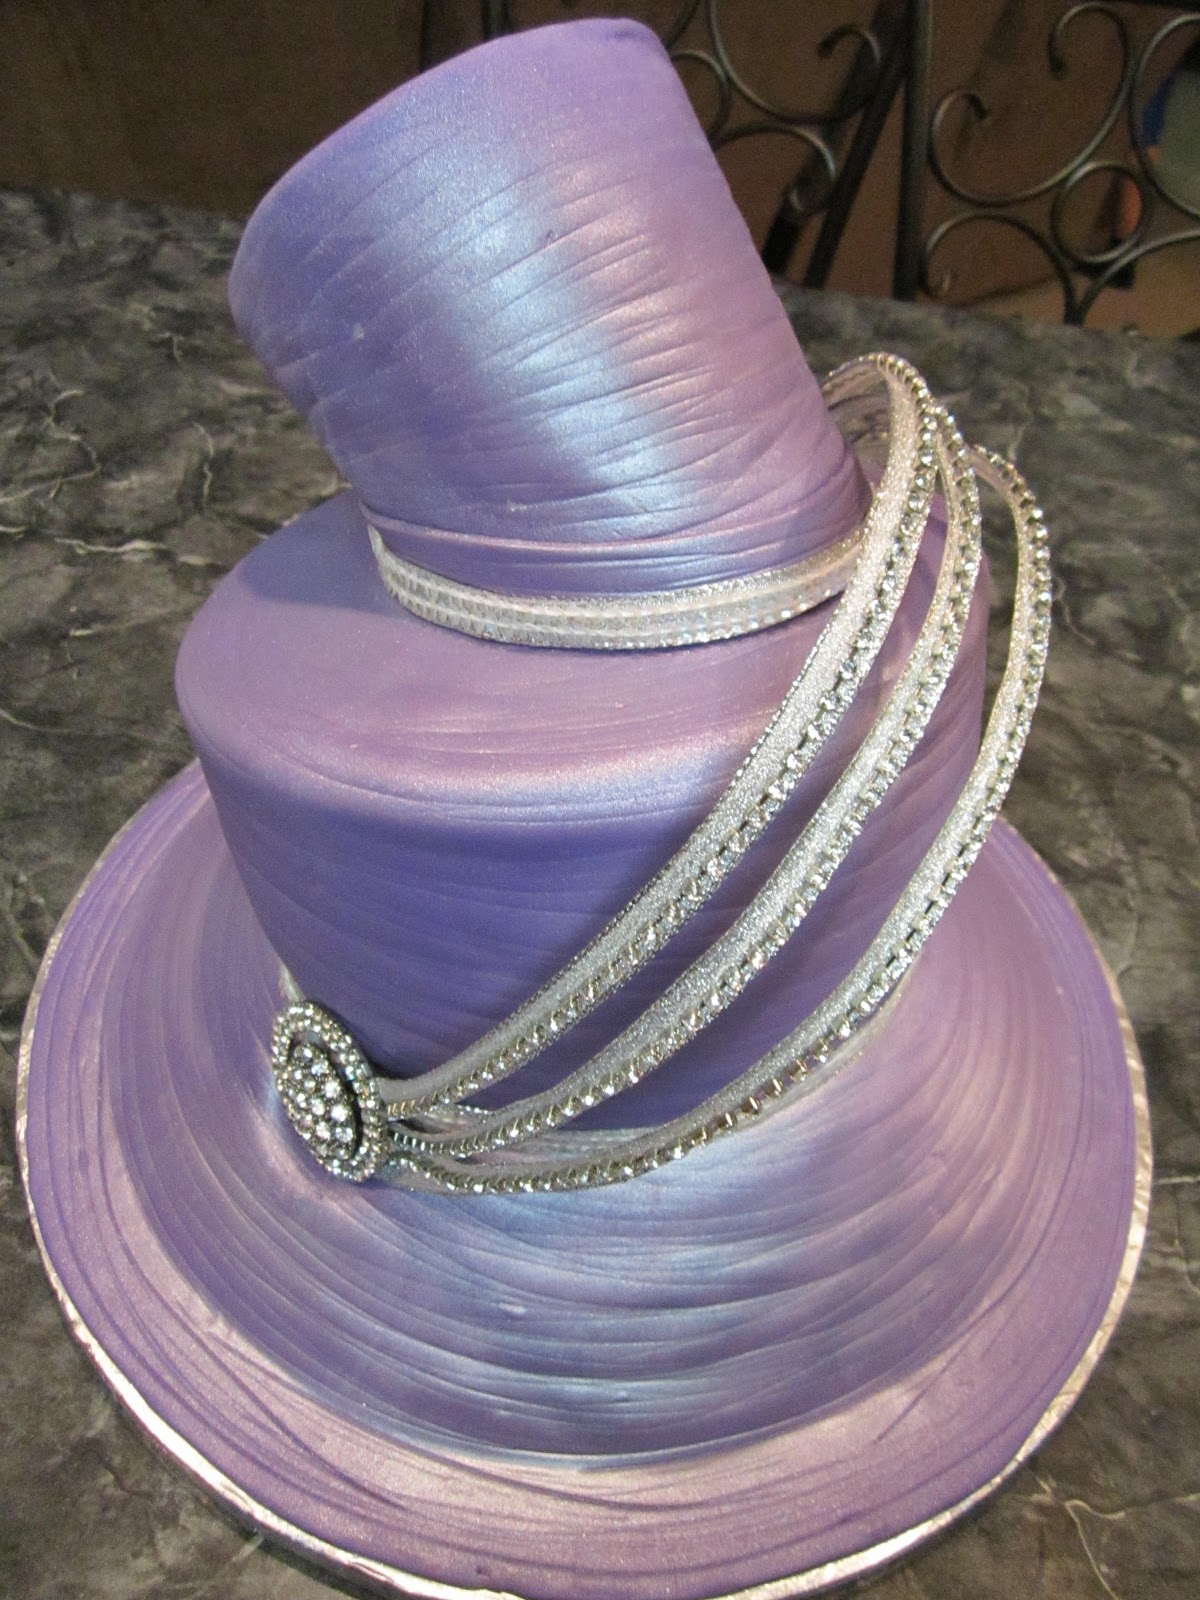 Mymonicakes Replica Of Purple Fancy Hat Cake With Crystal